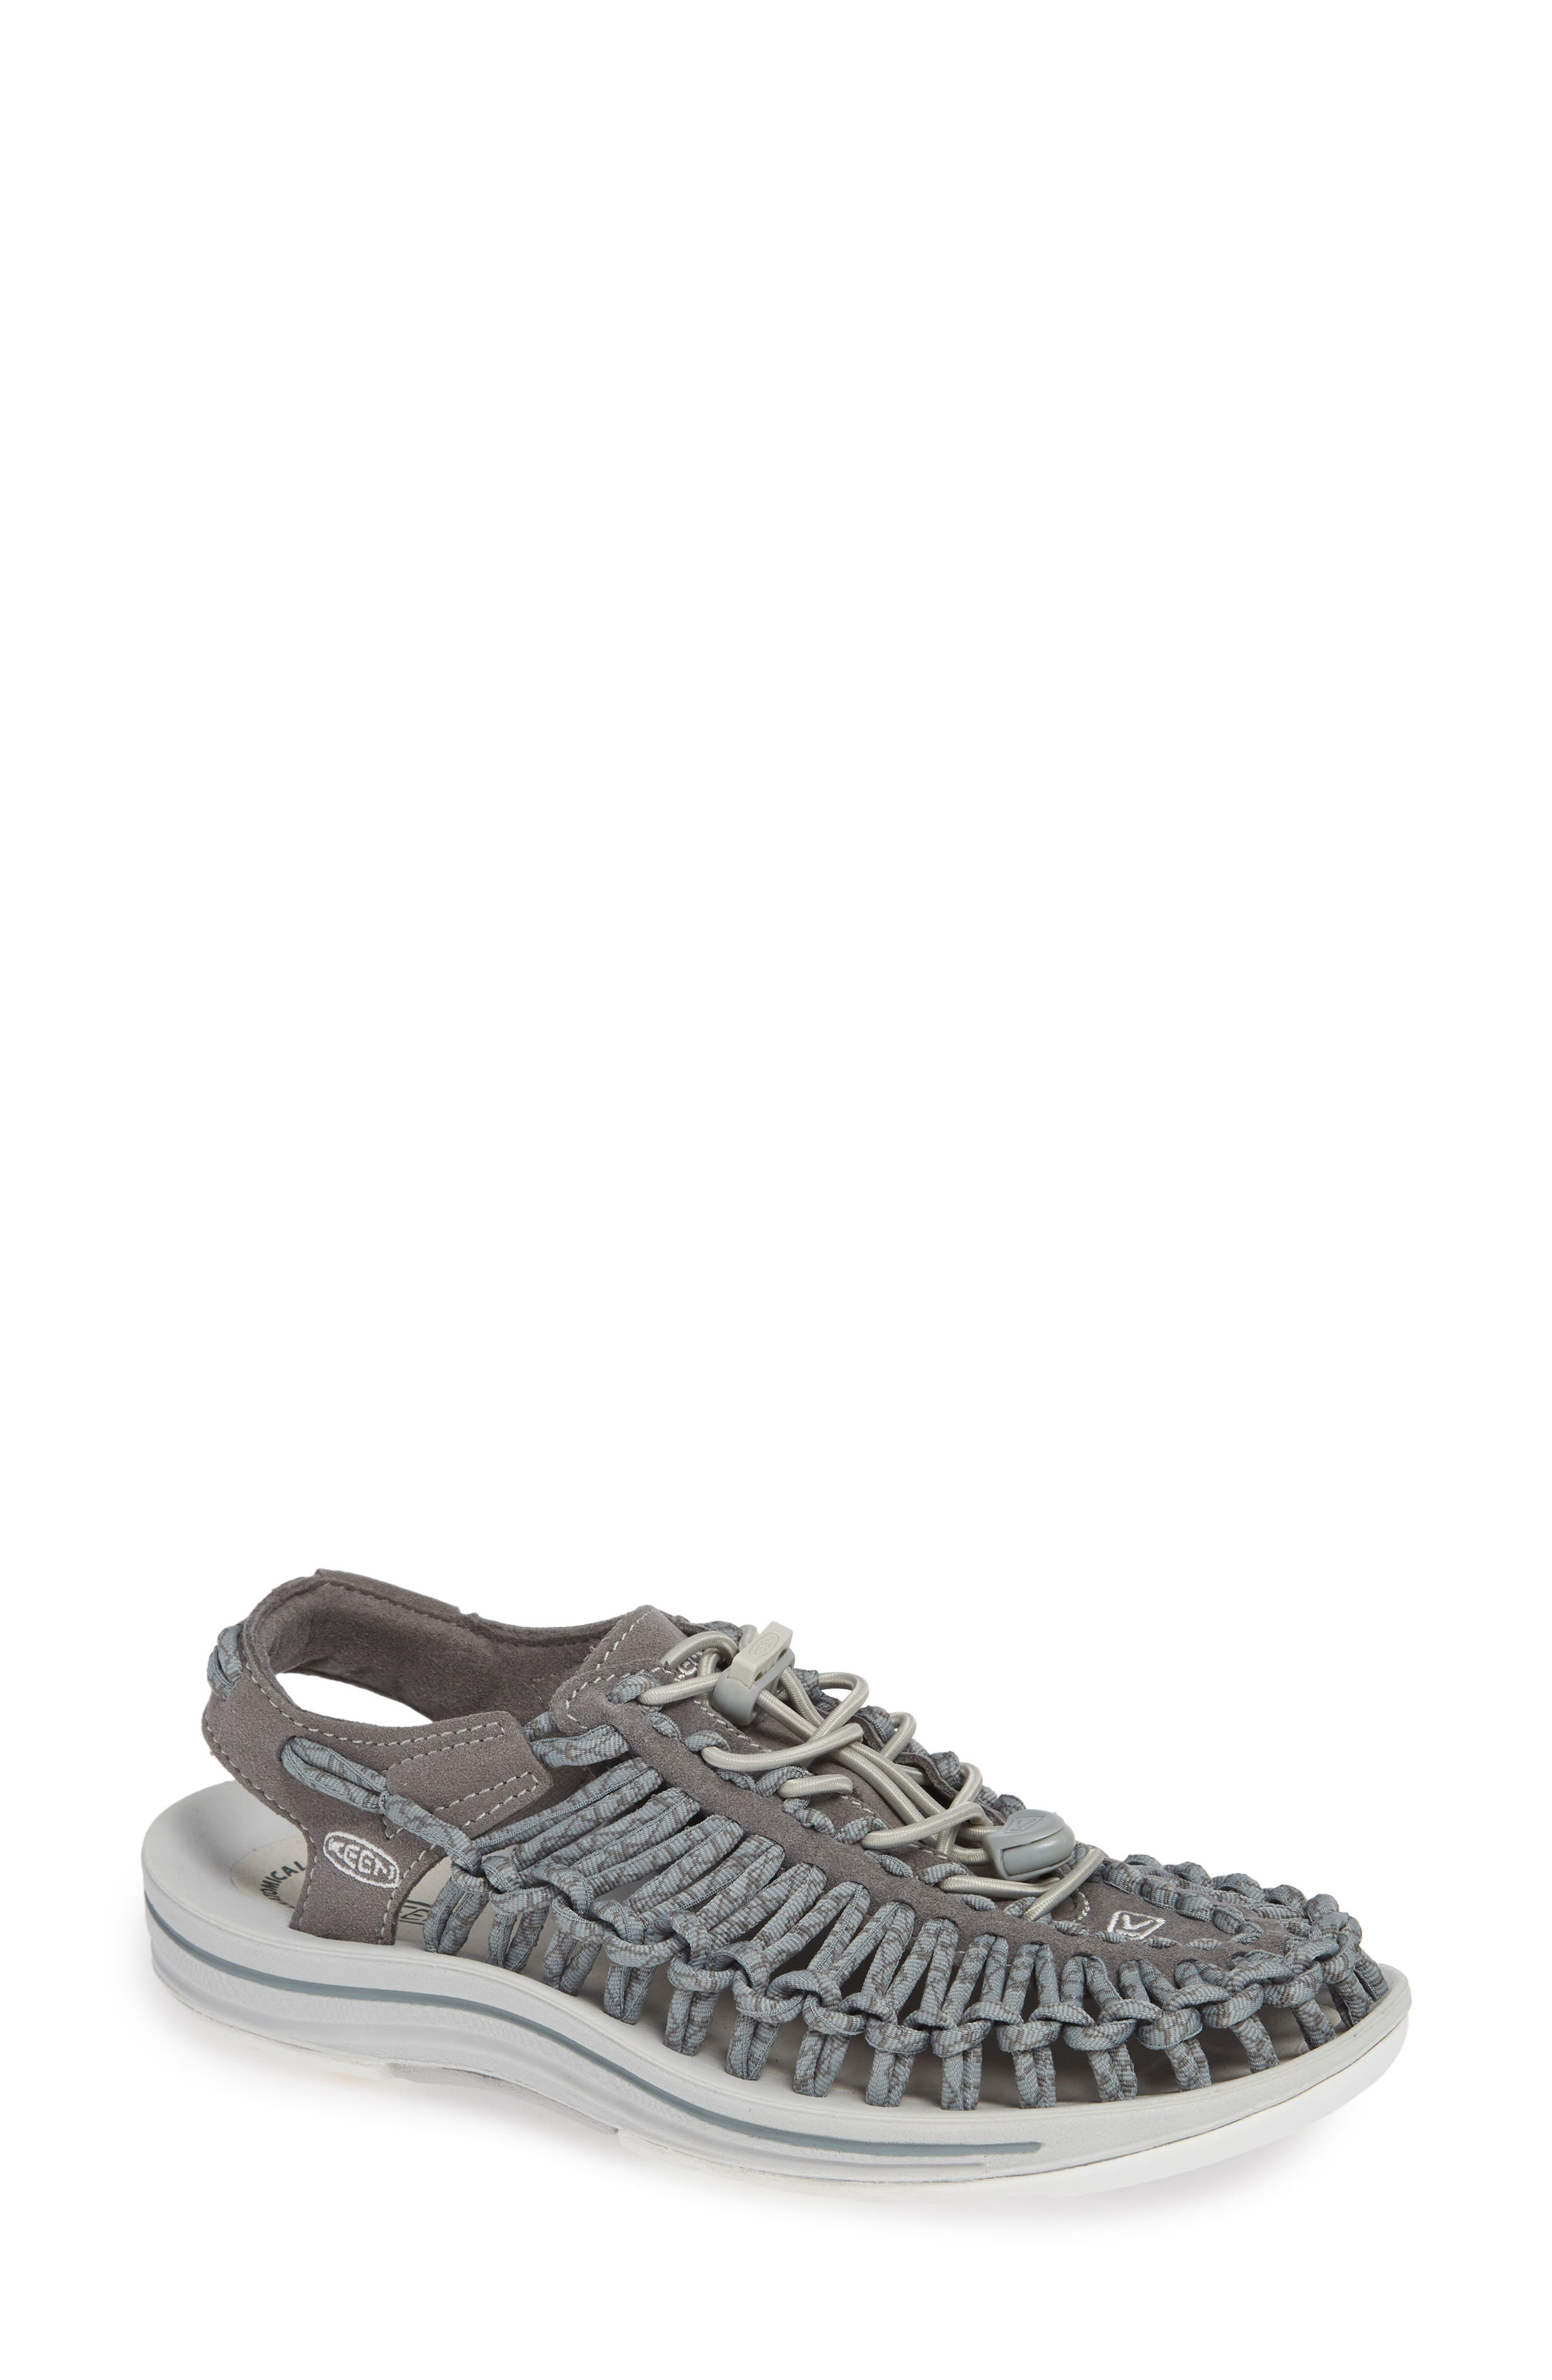 'Uneek' Water Sneaker,                             Main thumbnail 1, color,                             NEUTRAL GRAY/ GARGOYLE